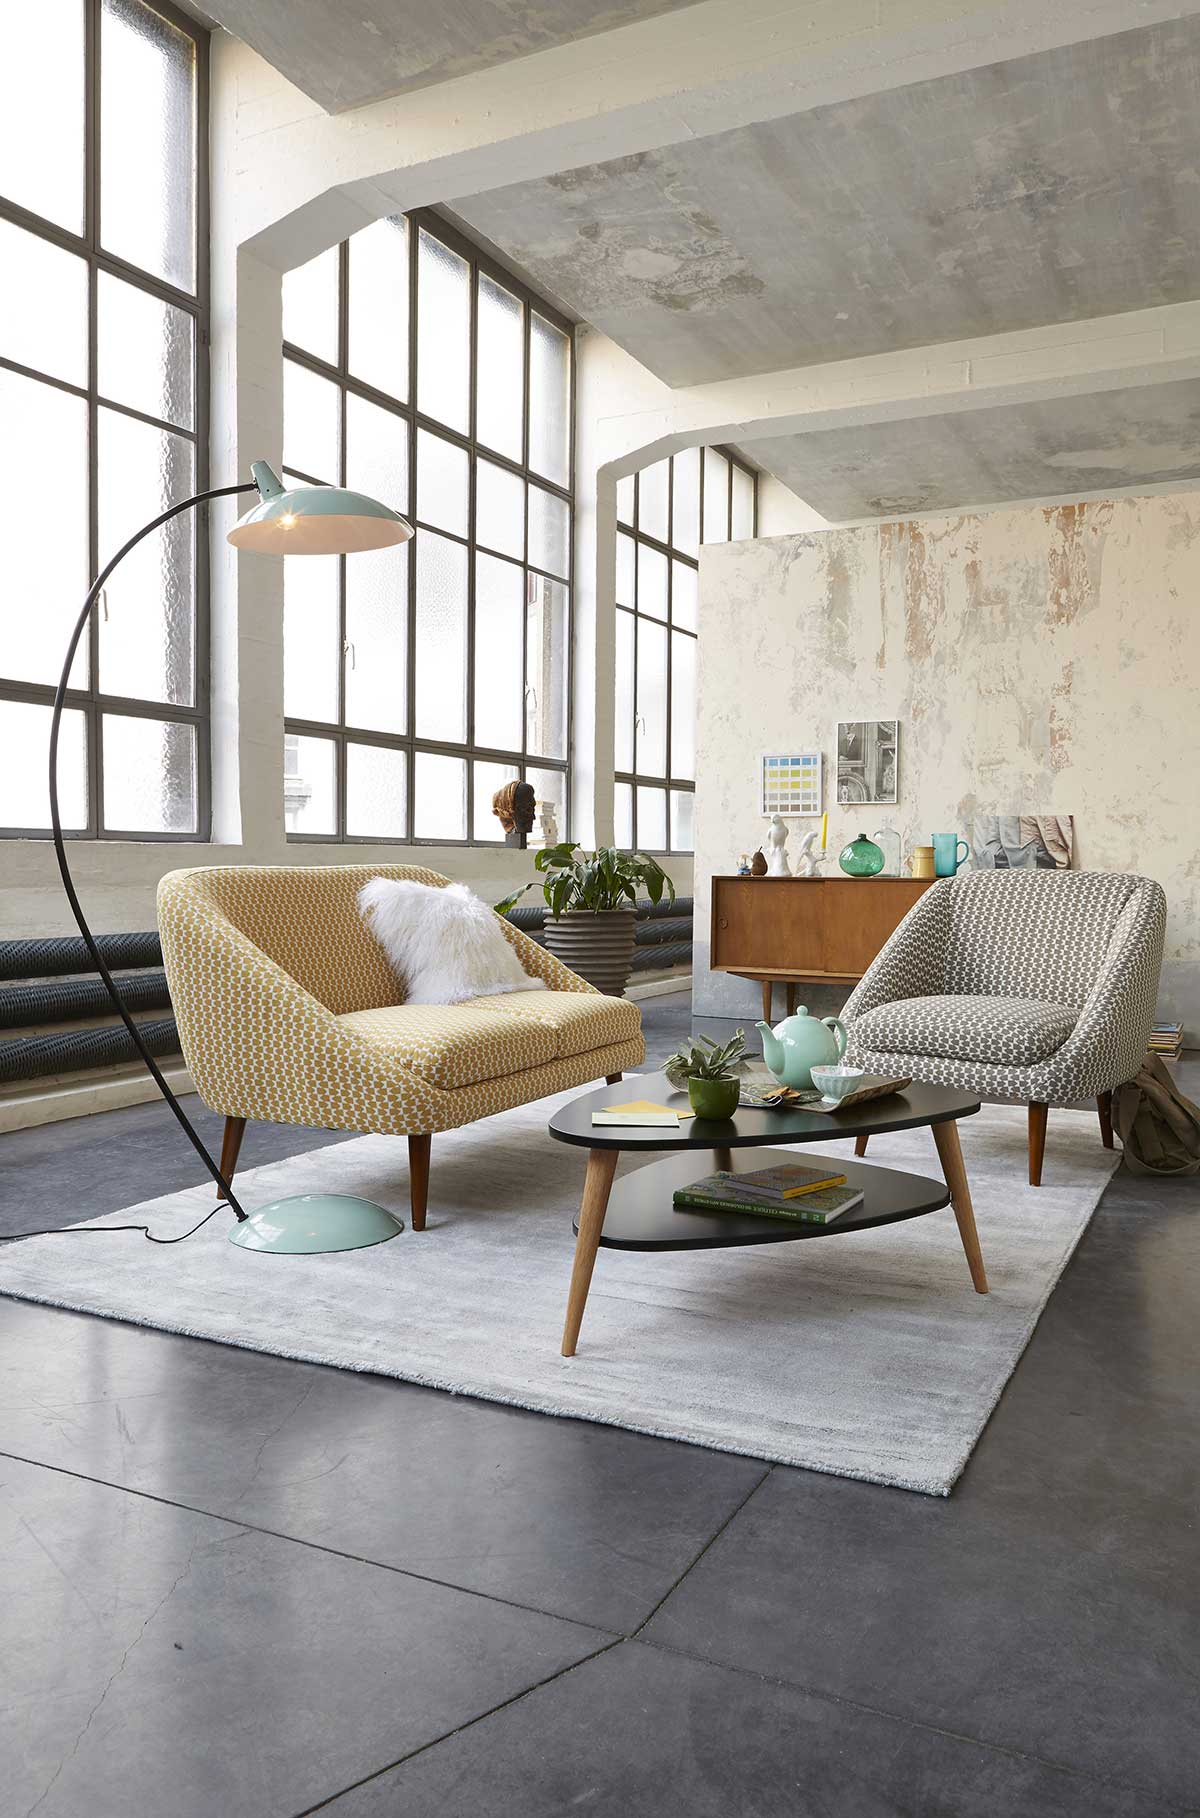 Salon dans un loft la redoute int rieur for Deco redoute